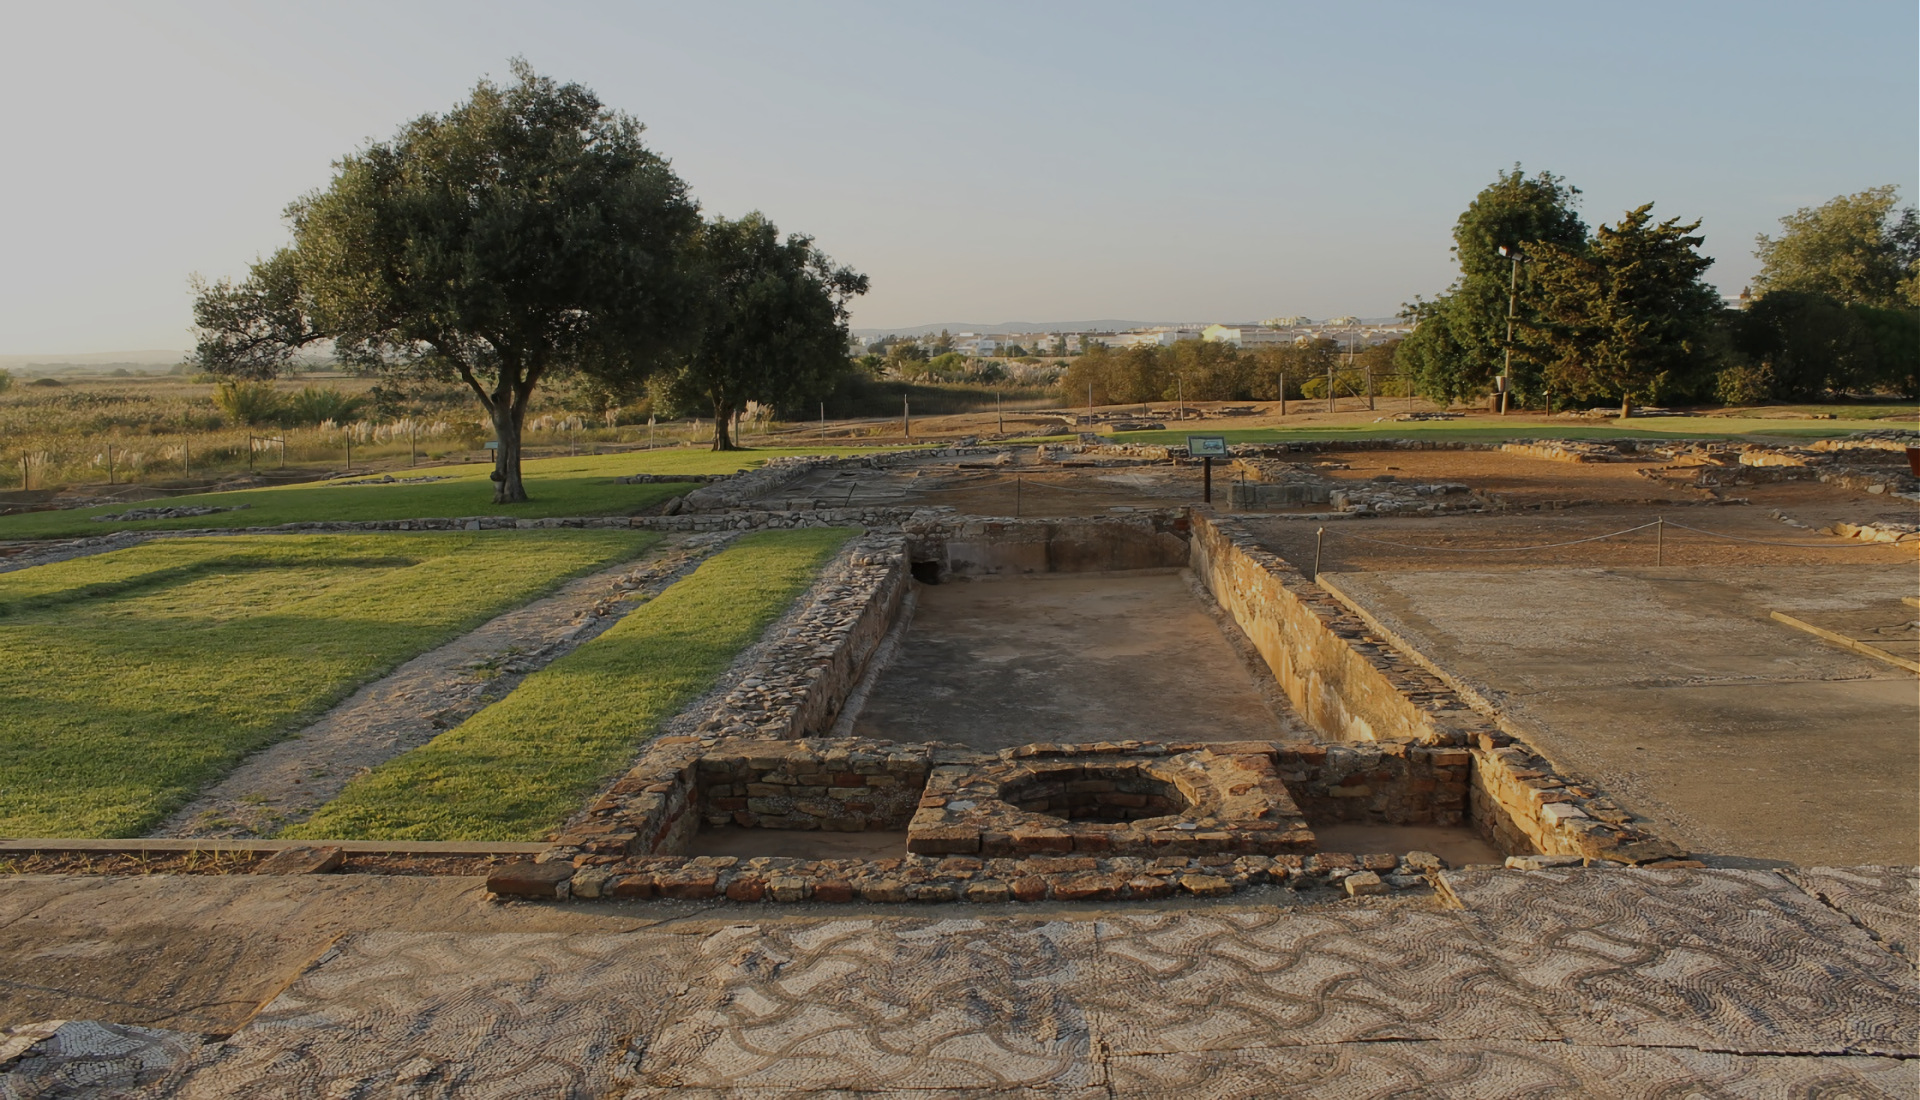 Cerro-da-Vila-Archaeological-site